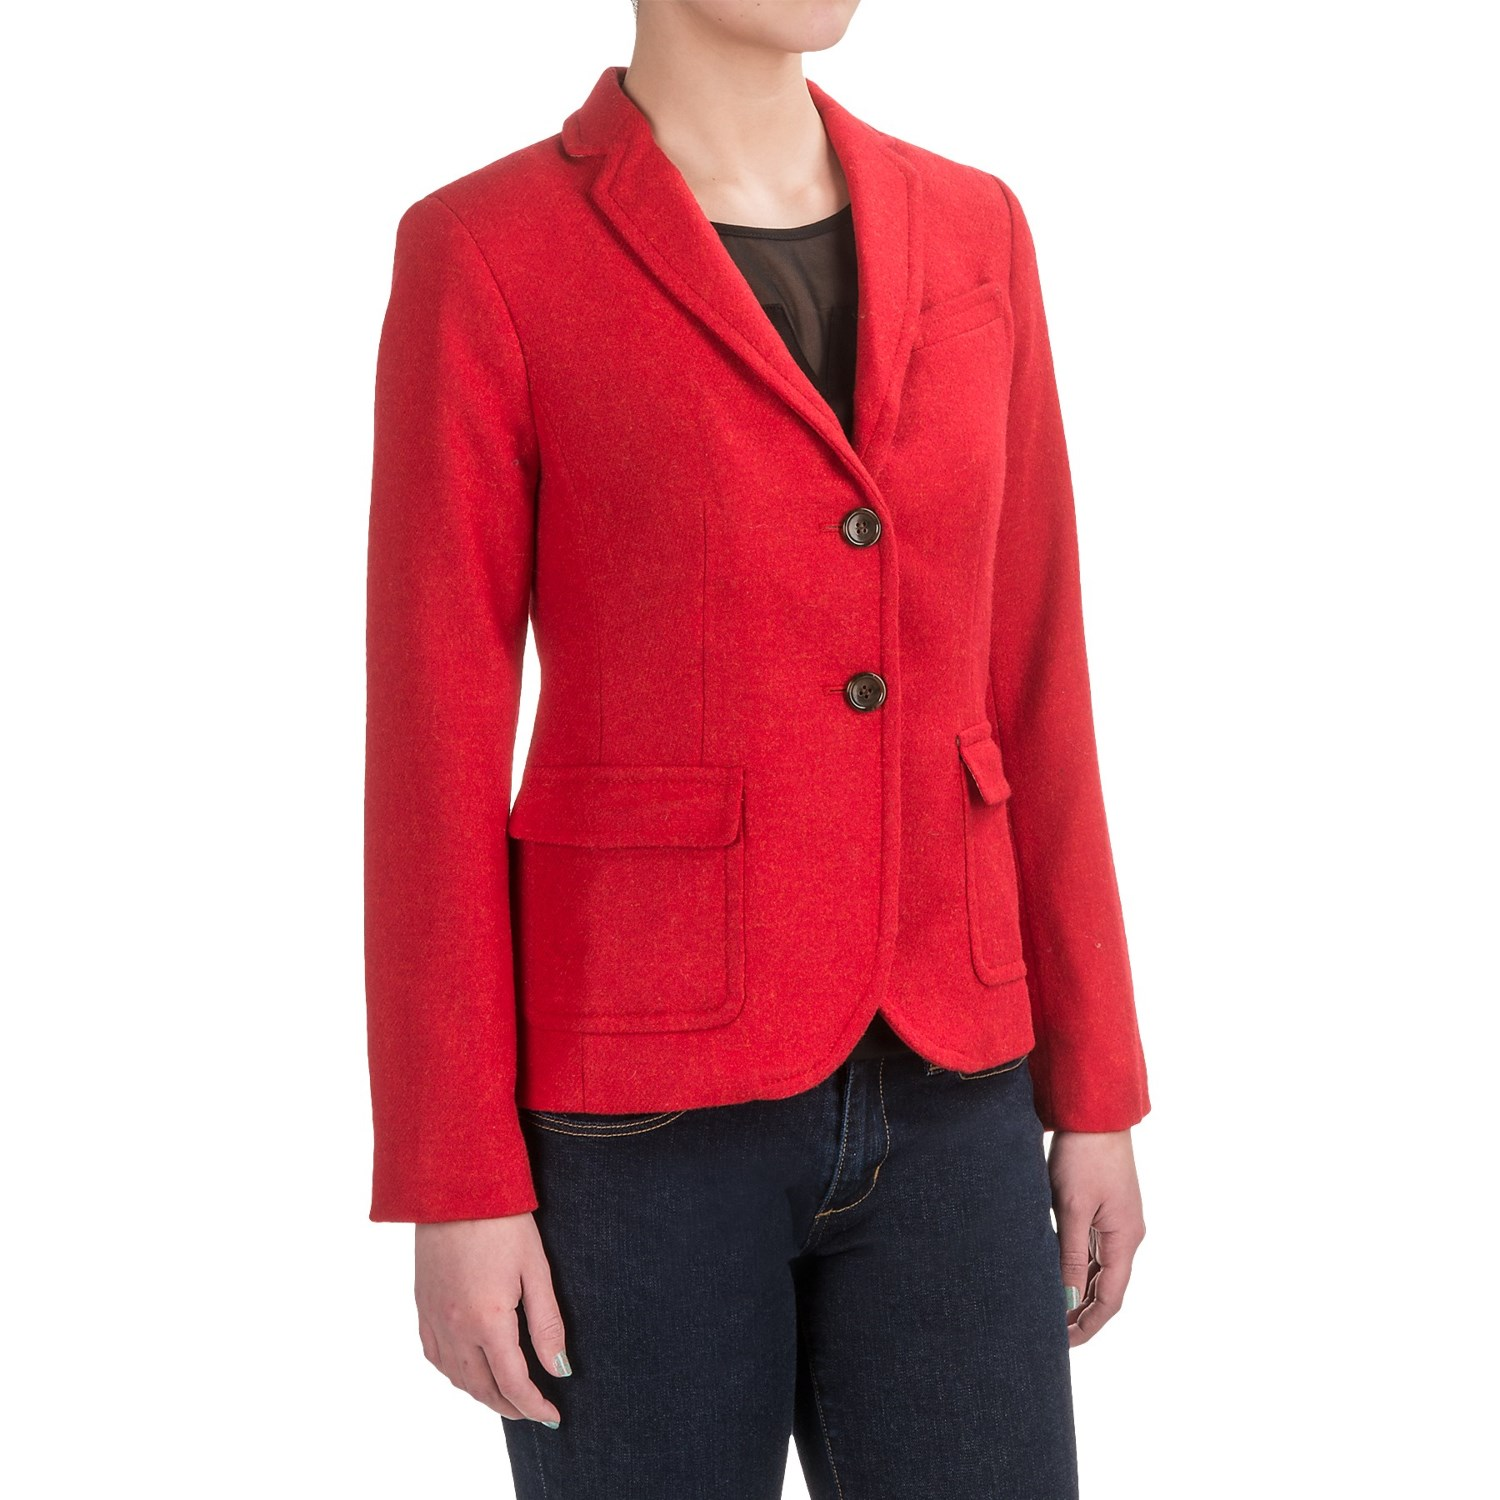 Shop Women's Blazers at bookbestnj.cf Find blazers and jackets in colorful linen, tweed and wool that are perfect for work and any season!